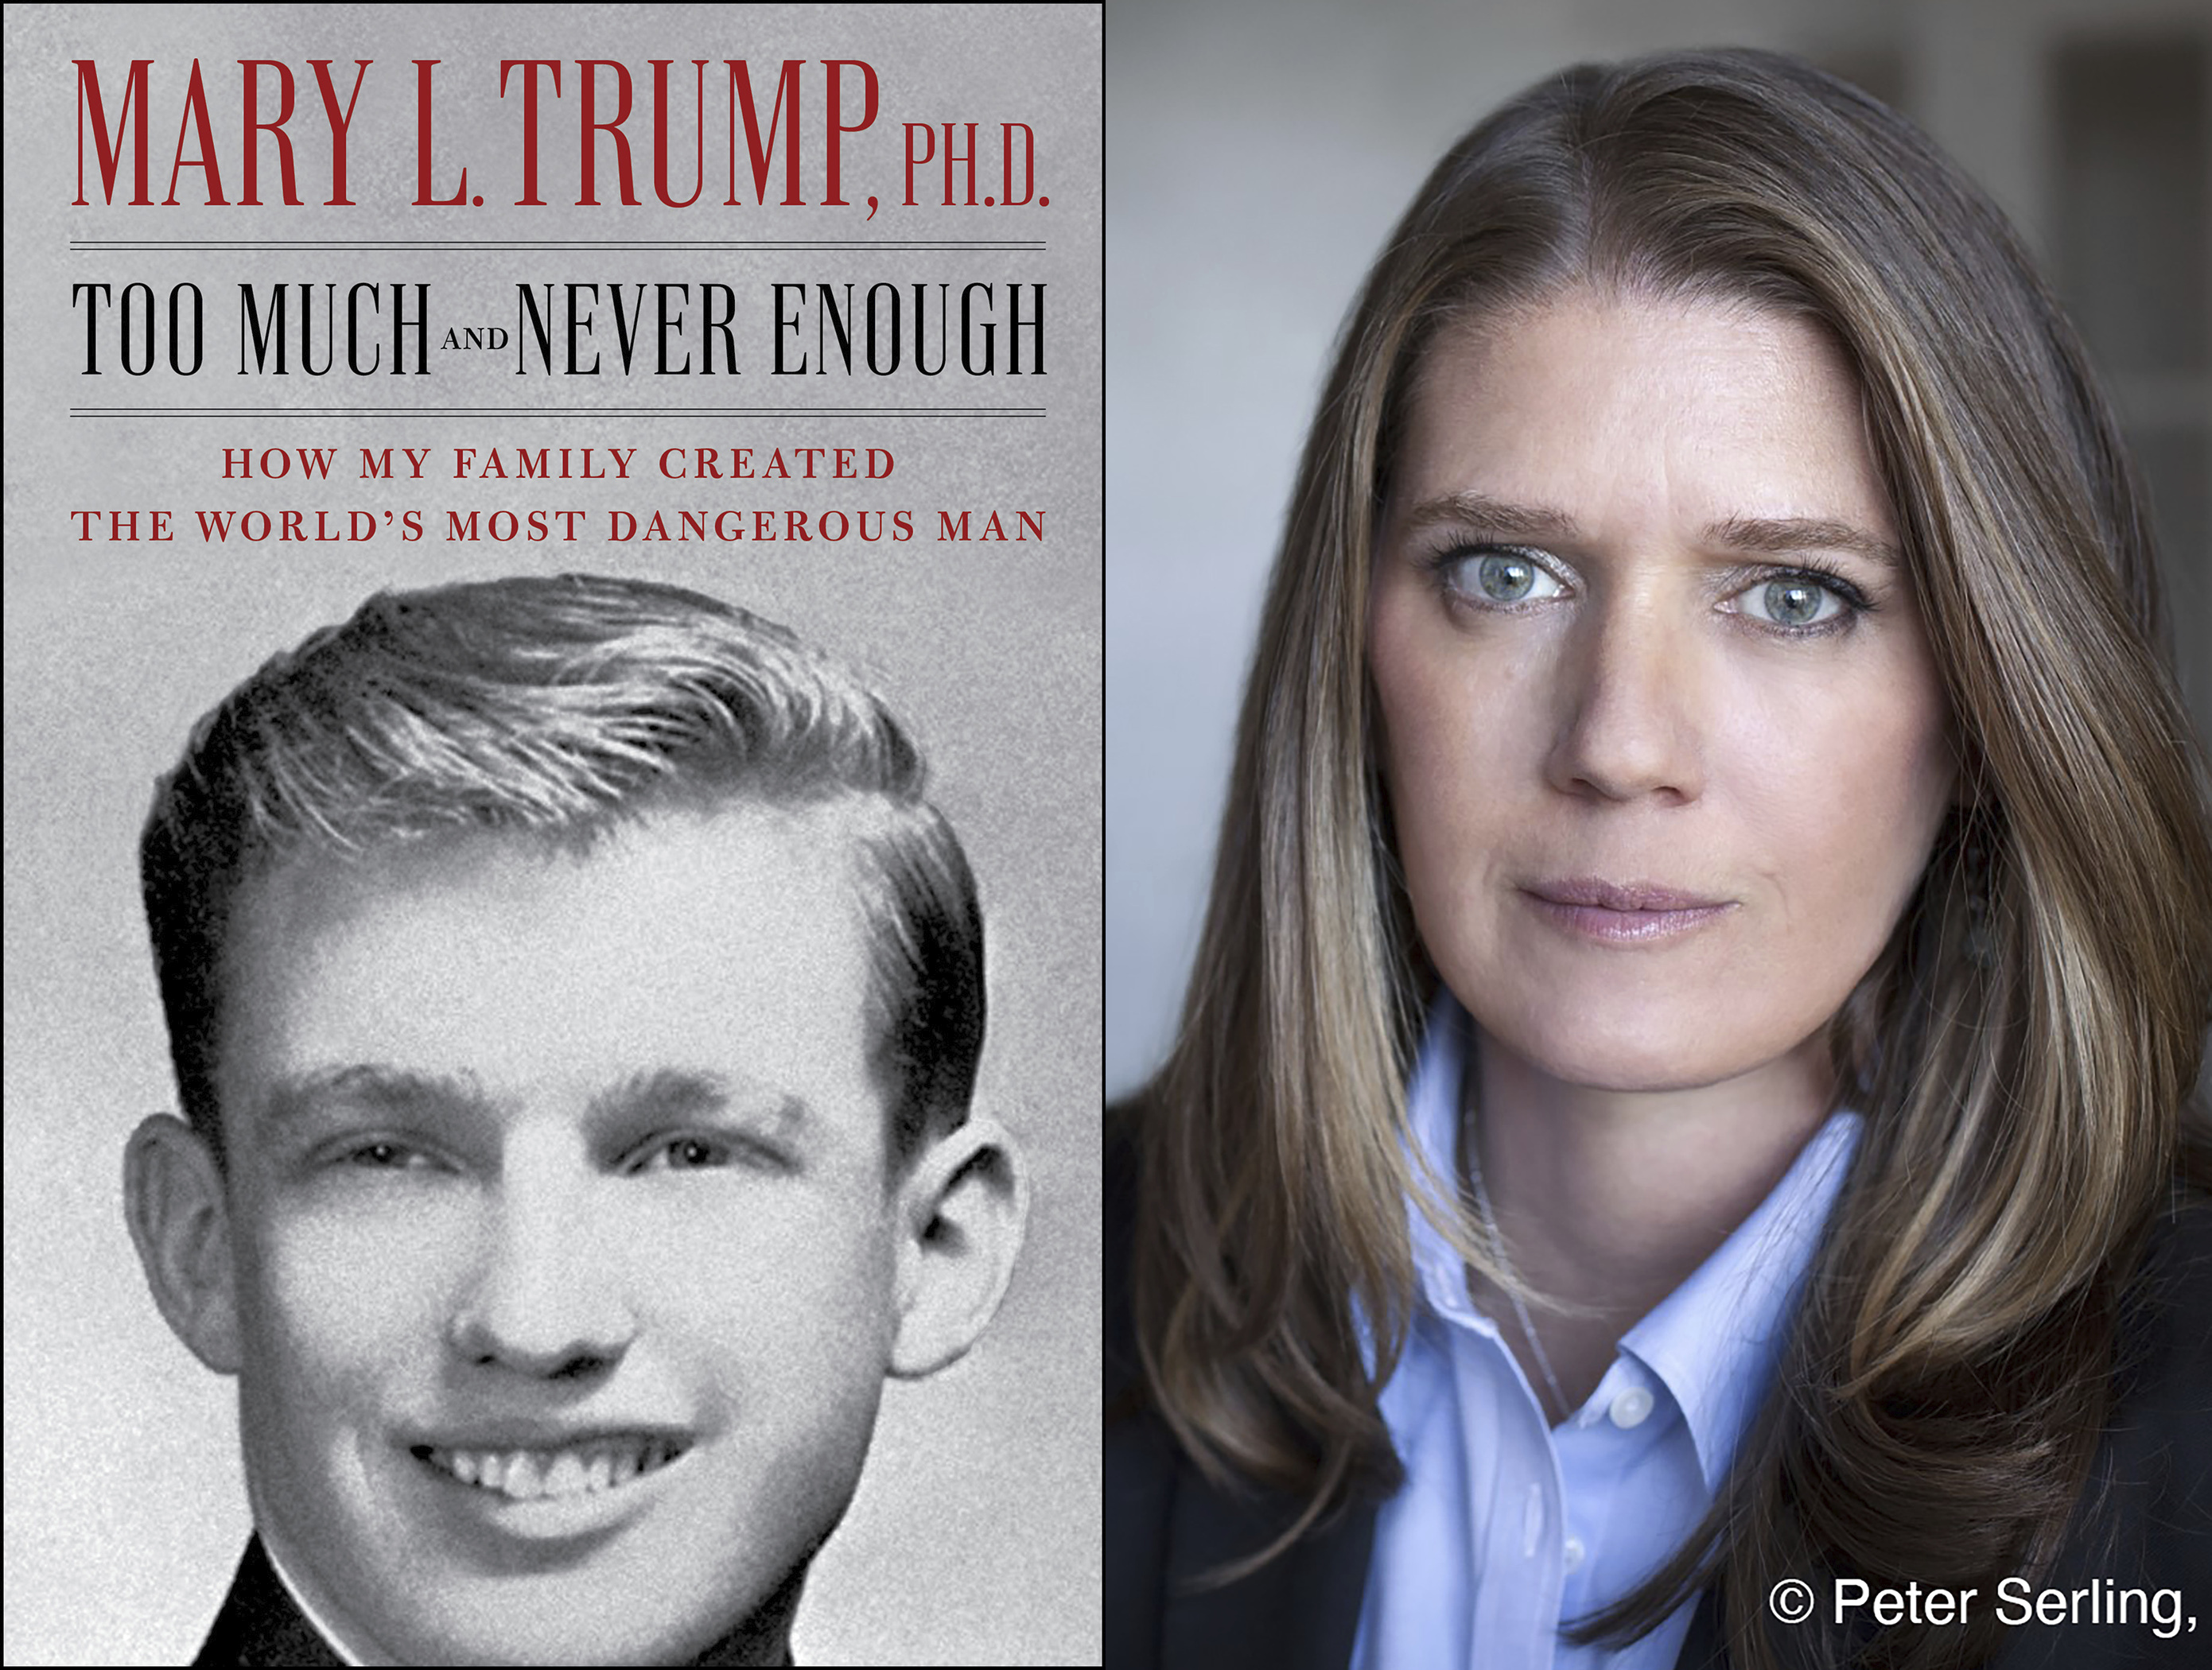 This combination photo shows the cover art for  Too Much and Never Enough: How My Family Created the World's Most Dangerous Man , left, and a portrait of author Mary L. Trump, Ph.D. The book, written by the niece of President Donald J. Trump, was originally set for release on July 28, but will now arrive on July 14.